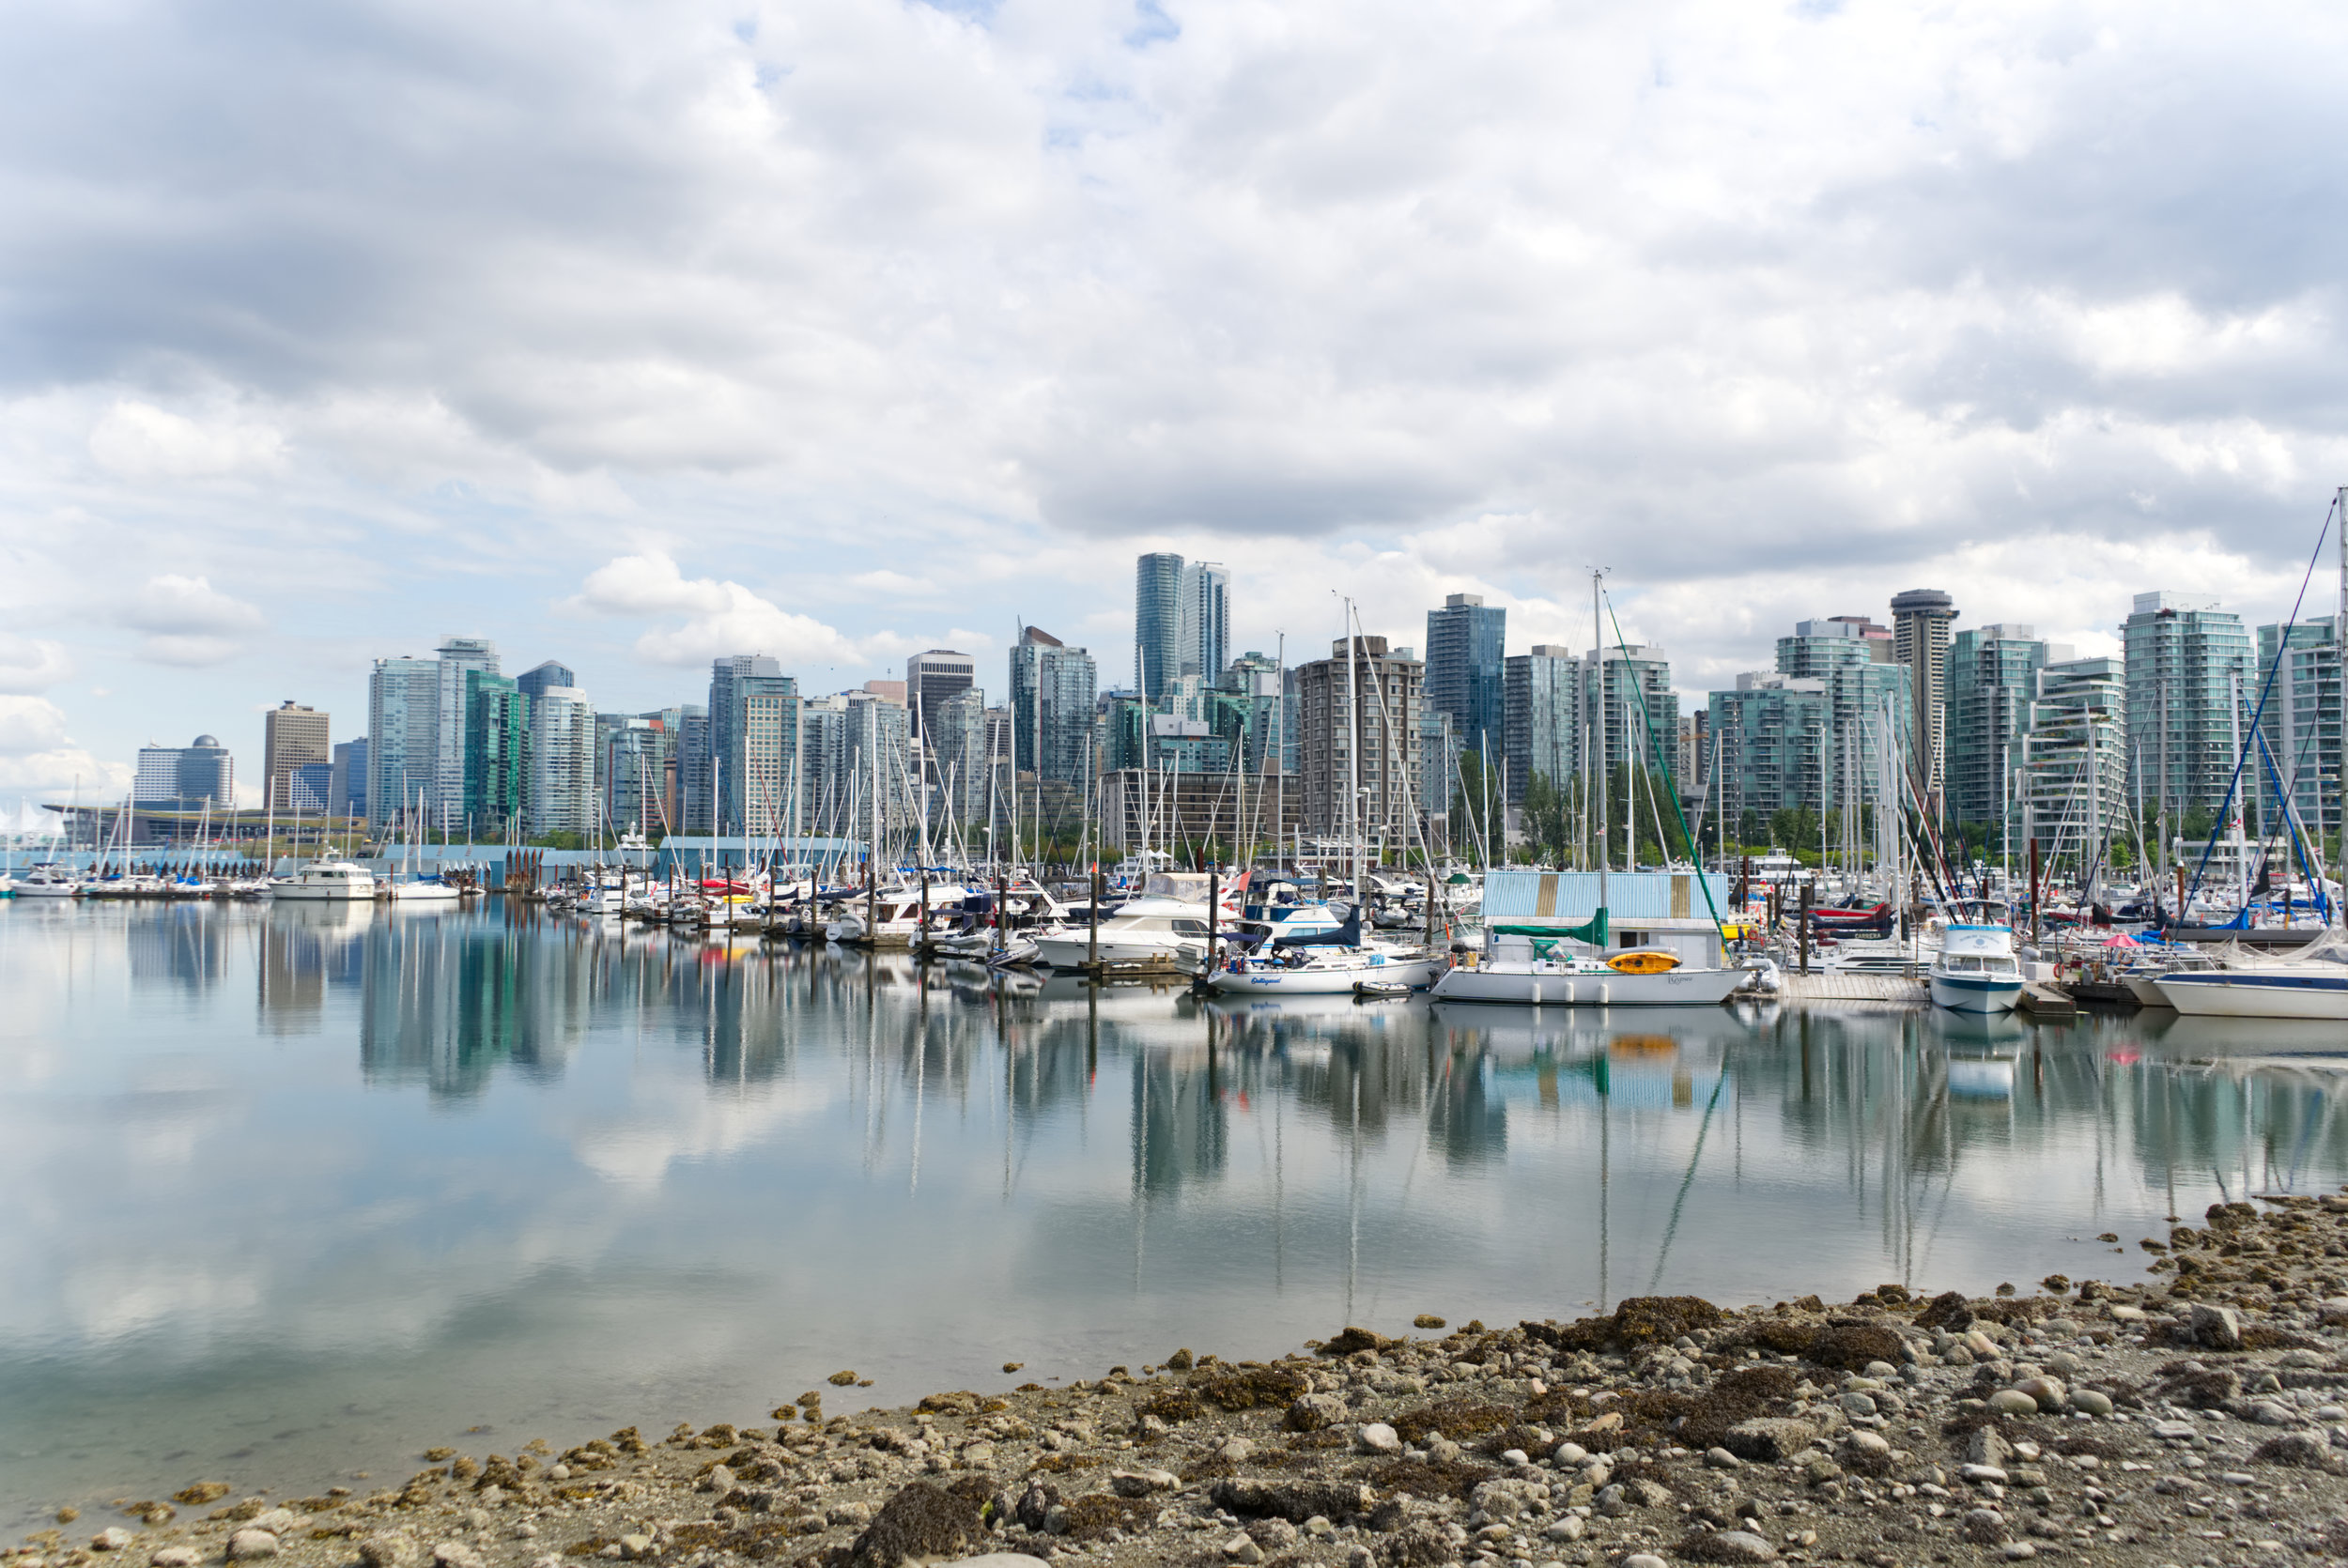 Photograph by JB Media Design - Trip to Vancouver, Canada